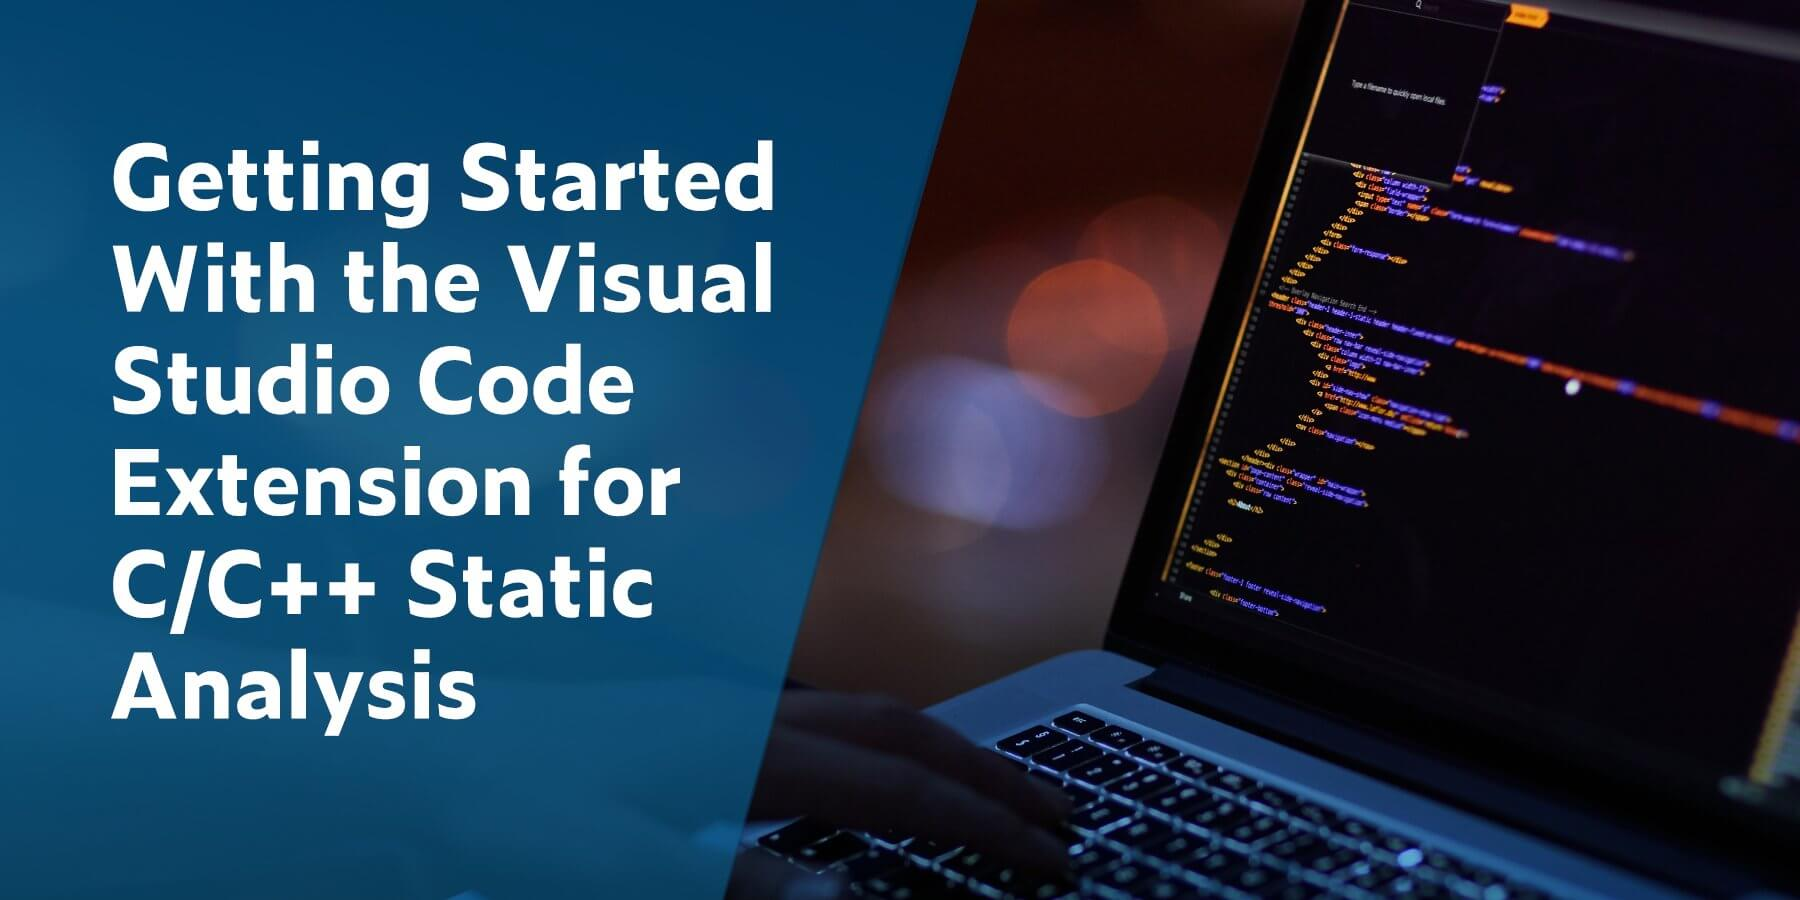 Getting Started With the Visual Studio Code Extension for C/C++ Static Analysis